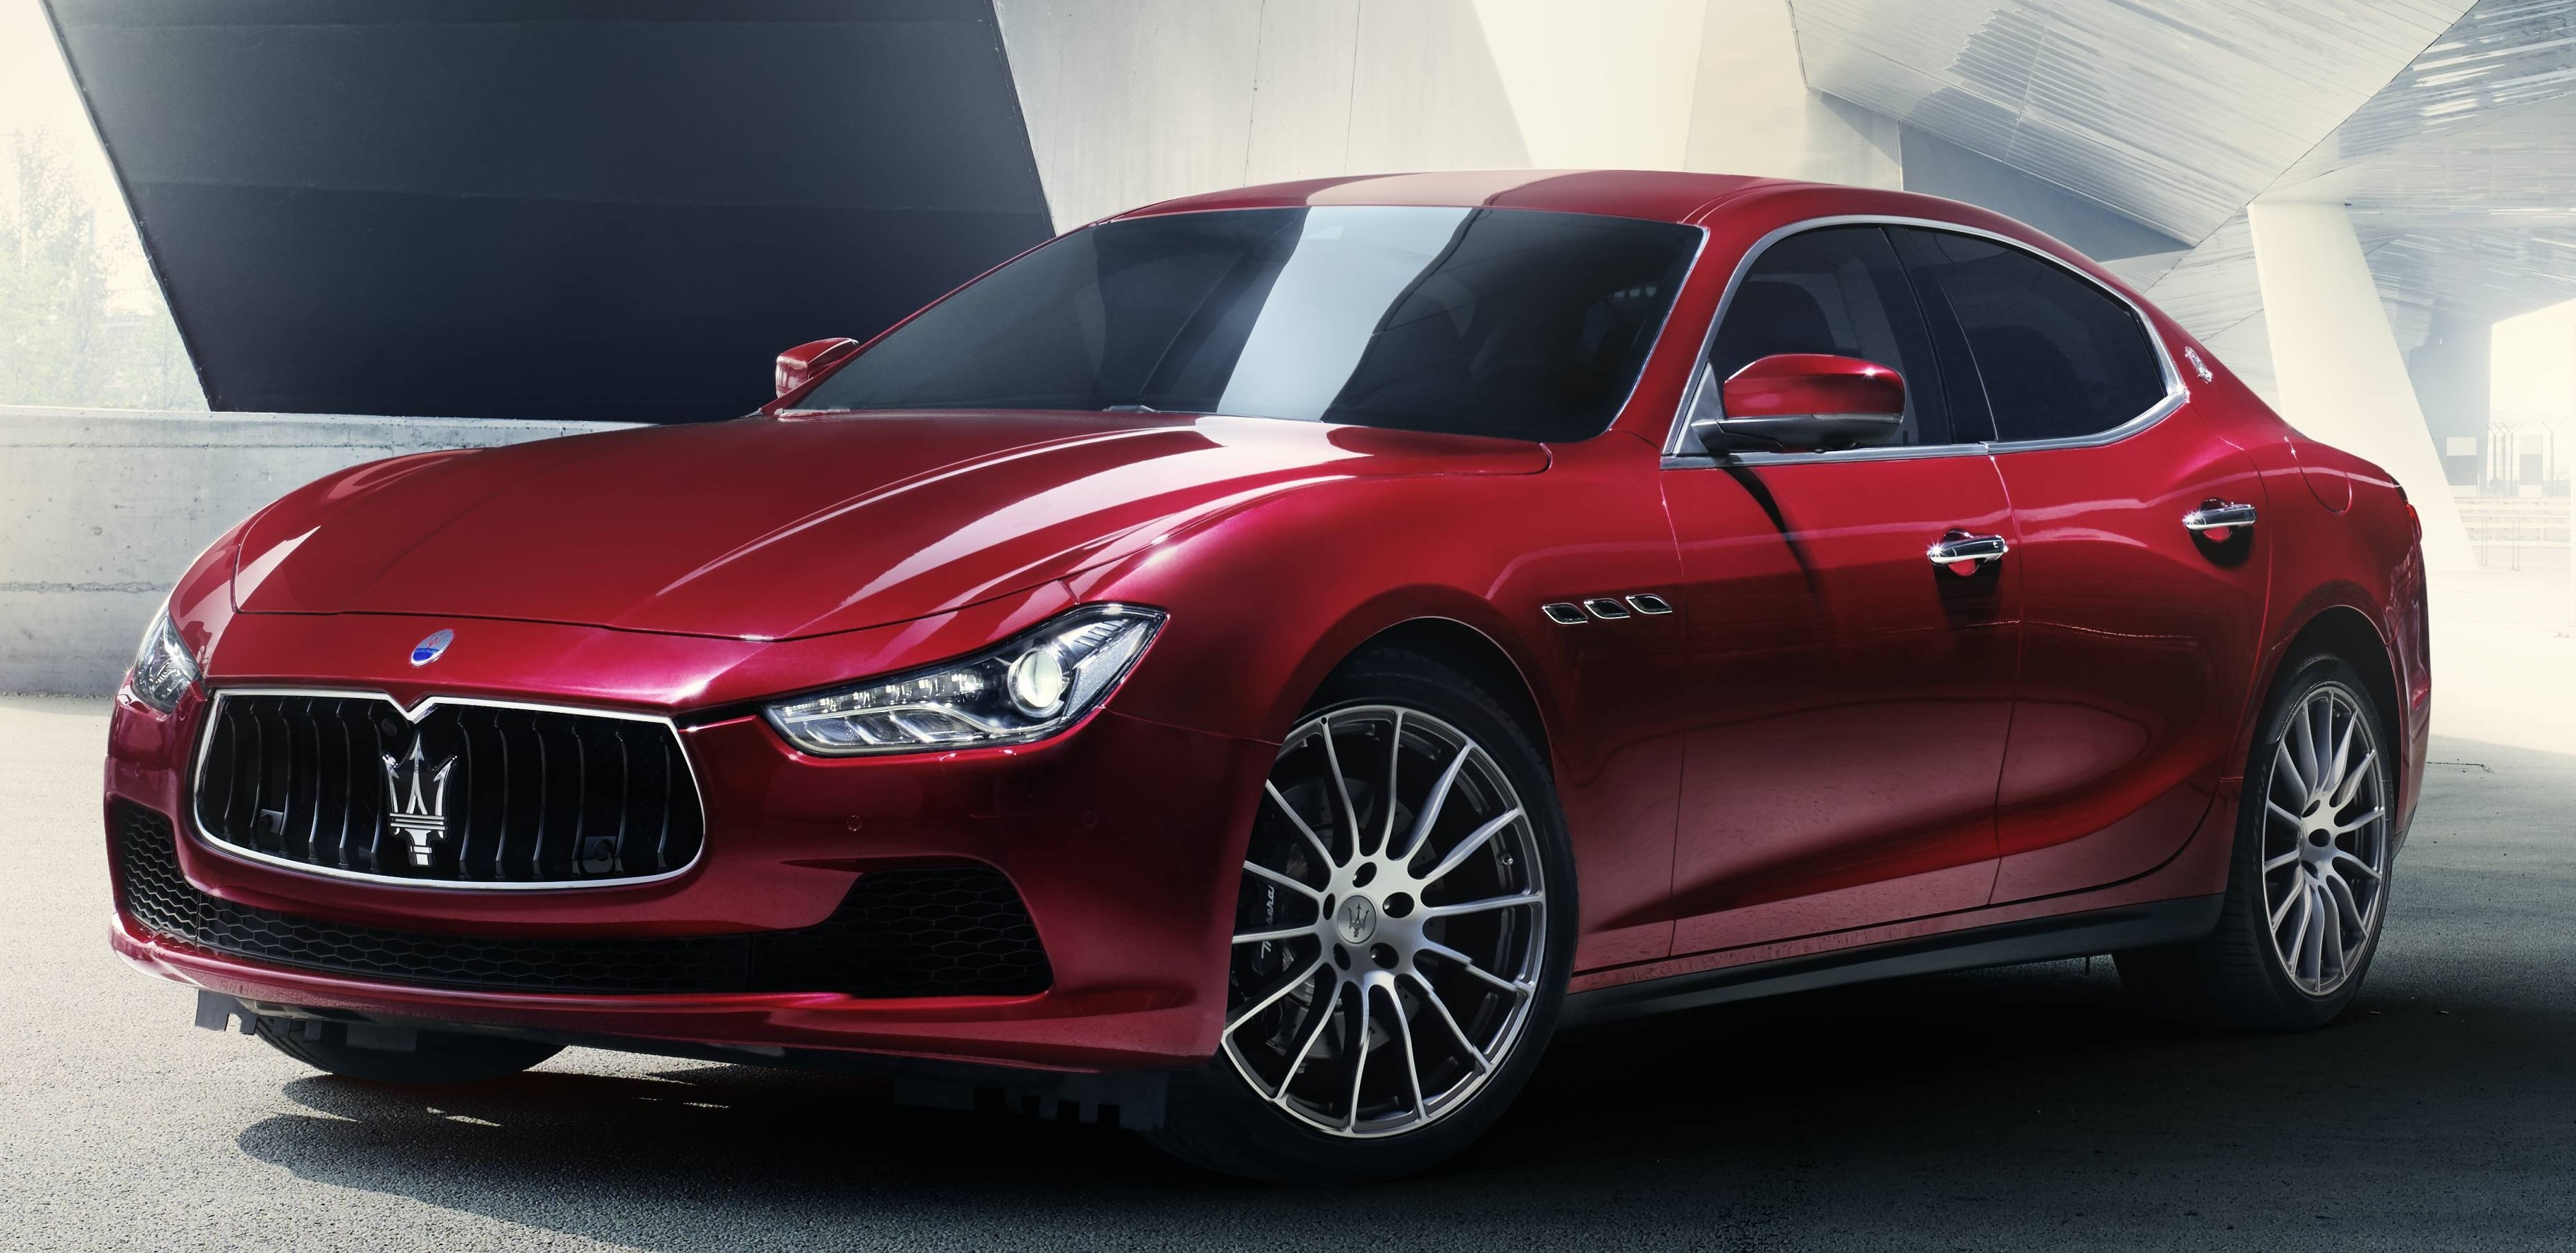 2017 maserati ghibli now in malaysia from rm619k. Black Bedroom Furniture Sets. Home Design Ideas